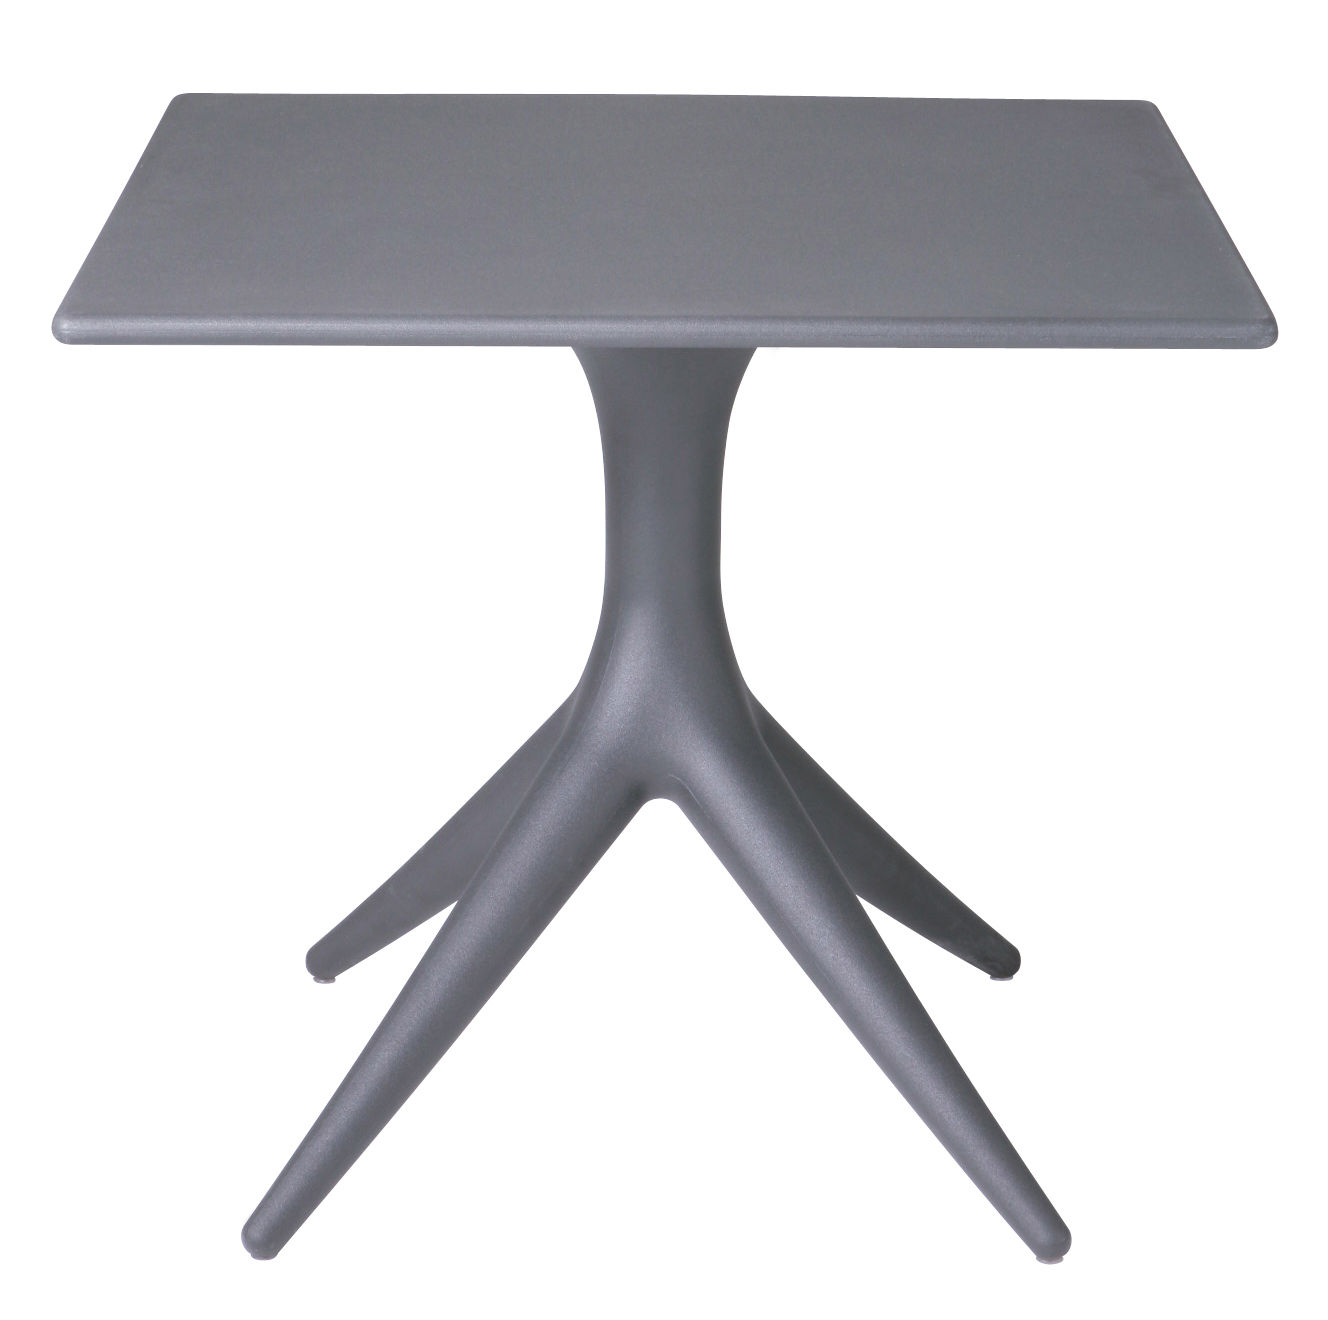 Outdoor - Garden Tables - App Square table - 80 x 80 cm by Driade - Anthracite grey - roto-moulded polyhene